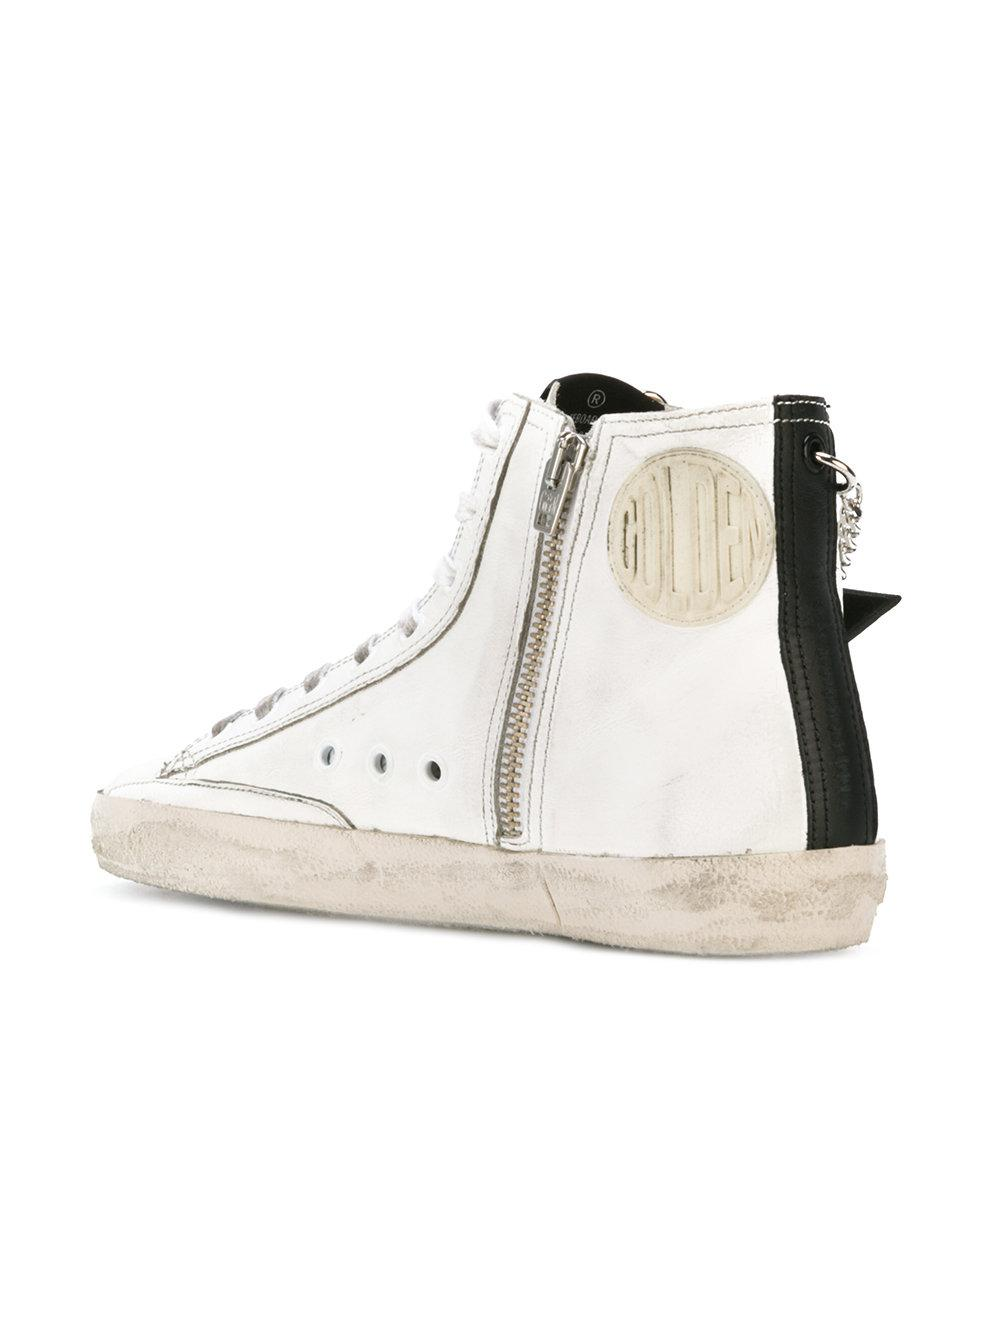 Golden Goose Deluxe Brand Leather Francy Sneakers in White